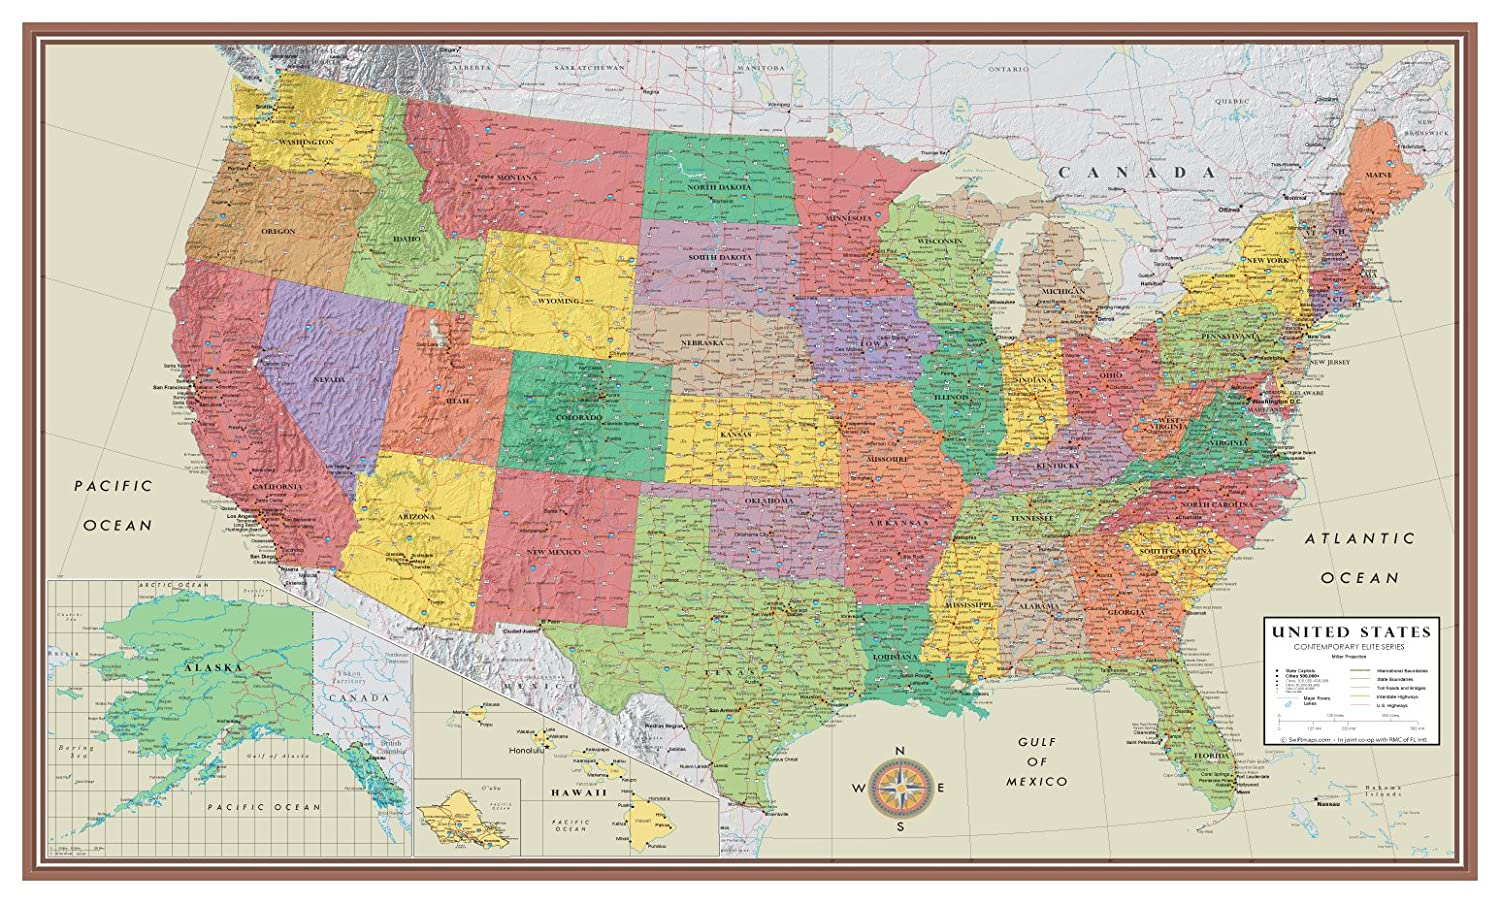 Amazoncom X United States USA Contemporary Elite Wall Map - States in us map